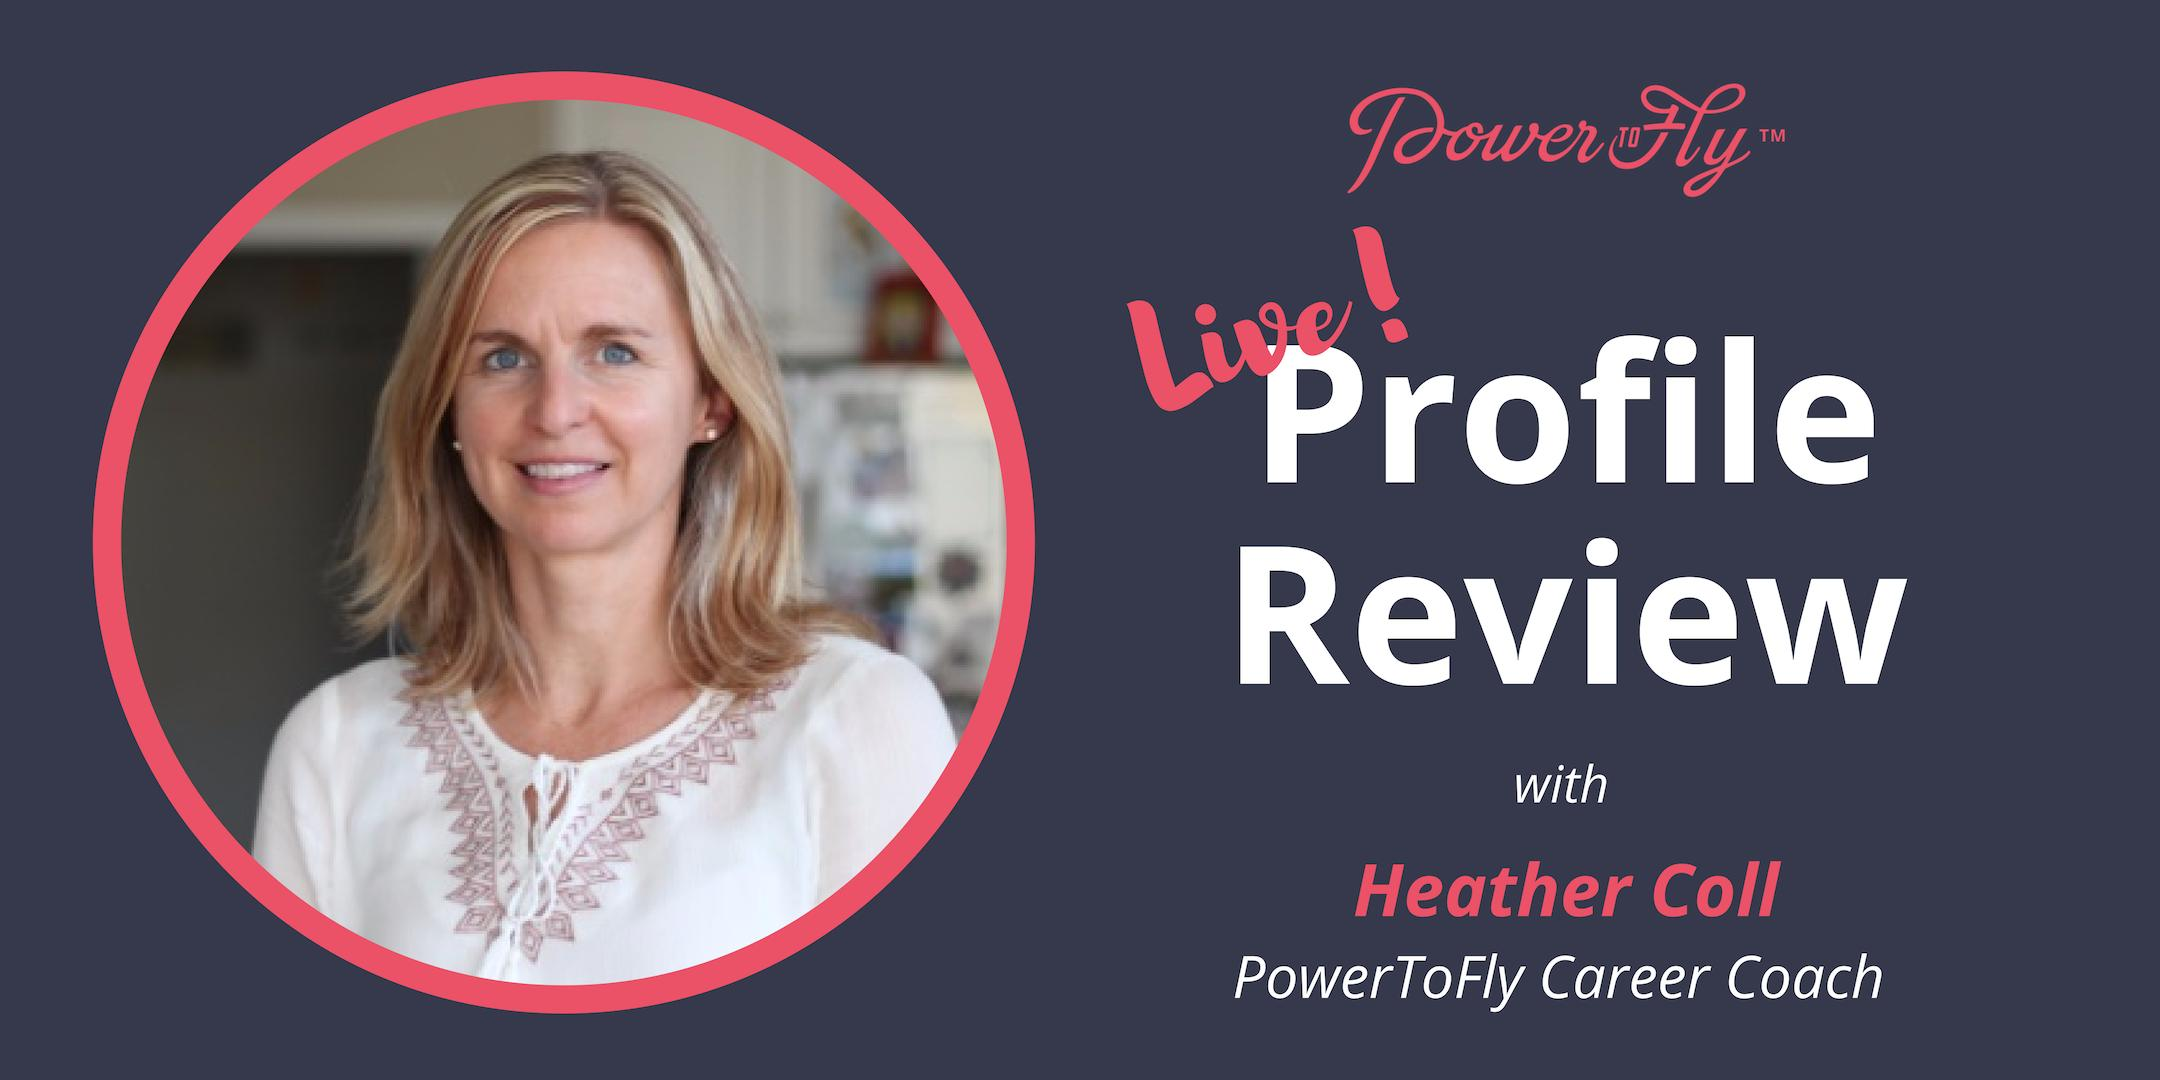 *LIVE* Profile Review With PowerToFly Career Coach 6/20